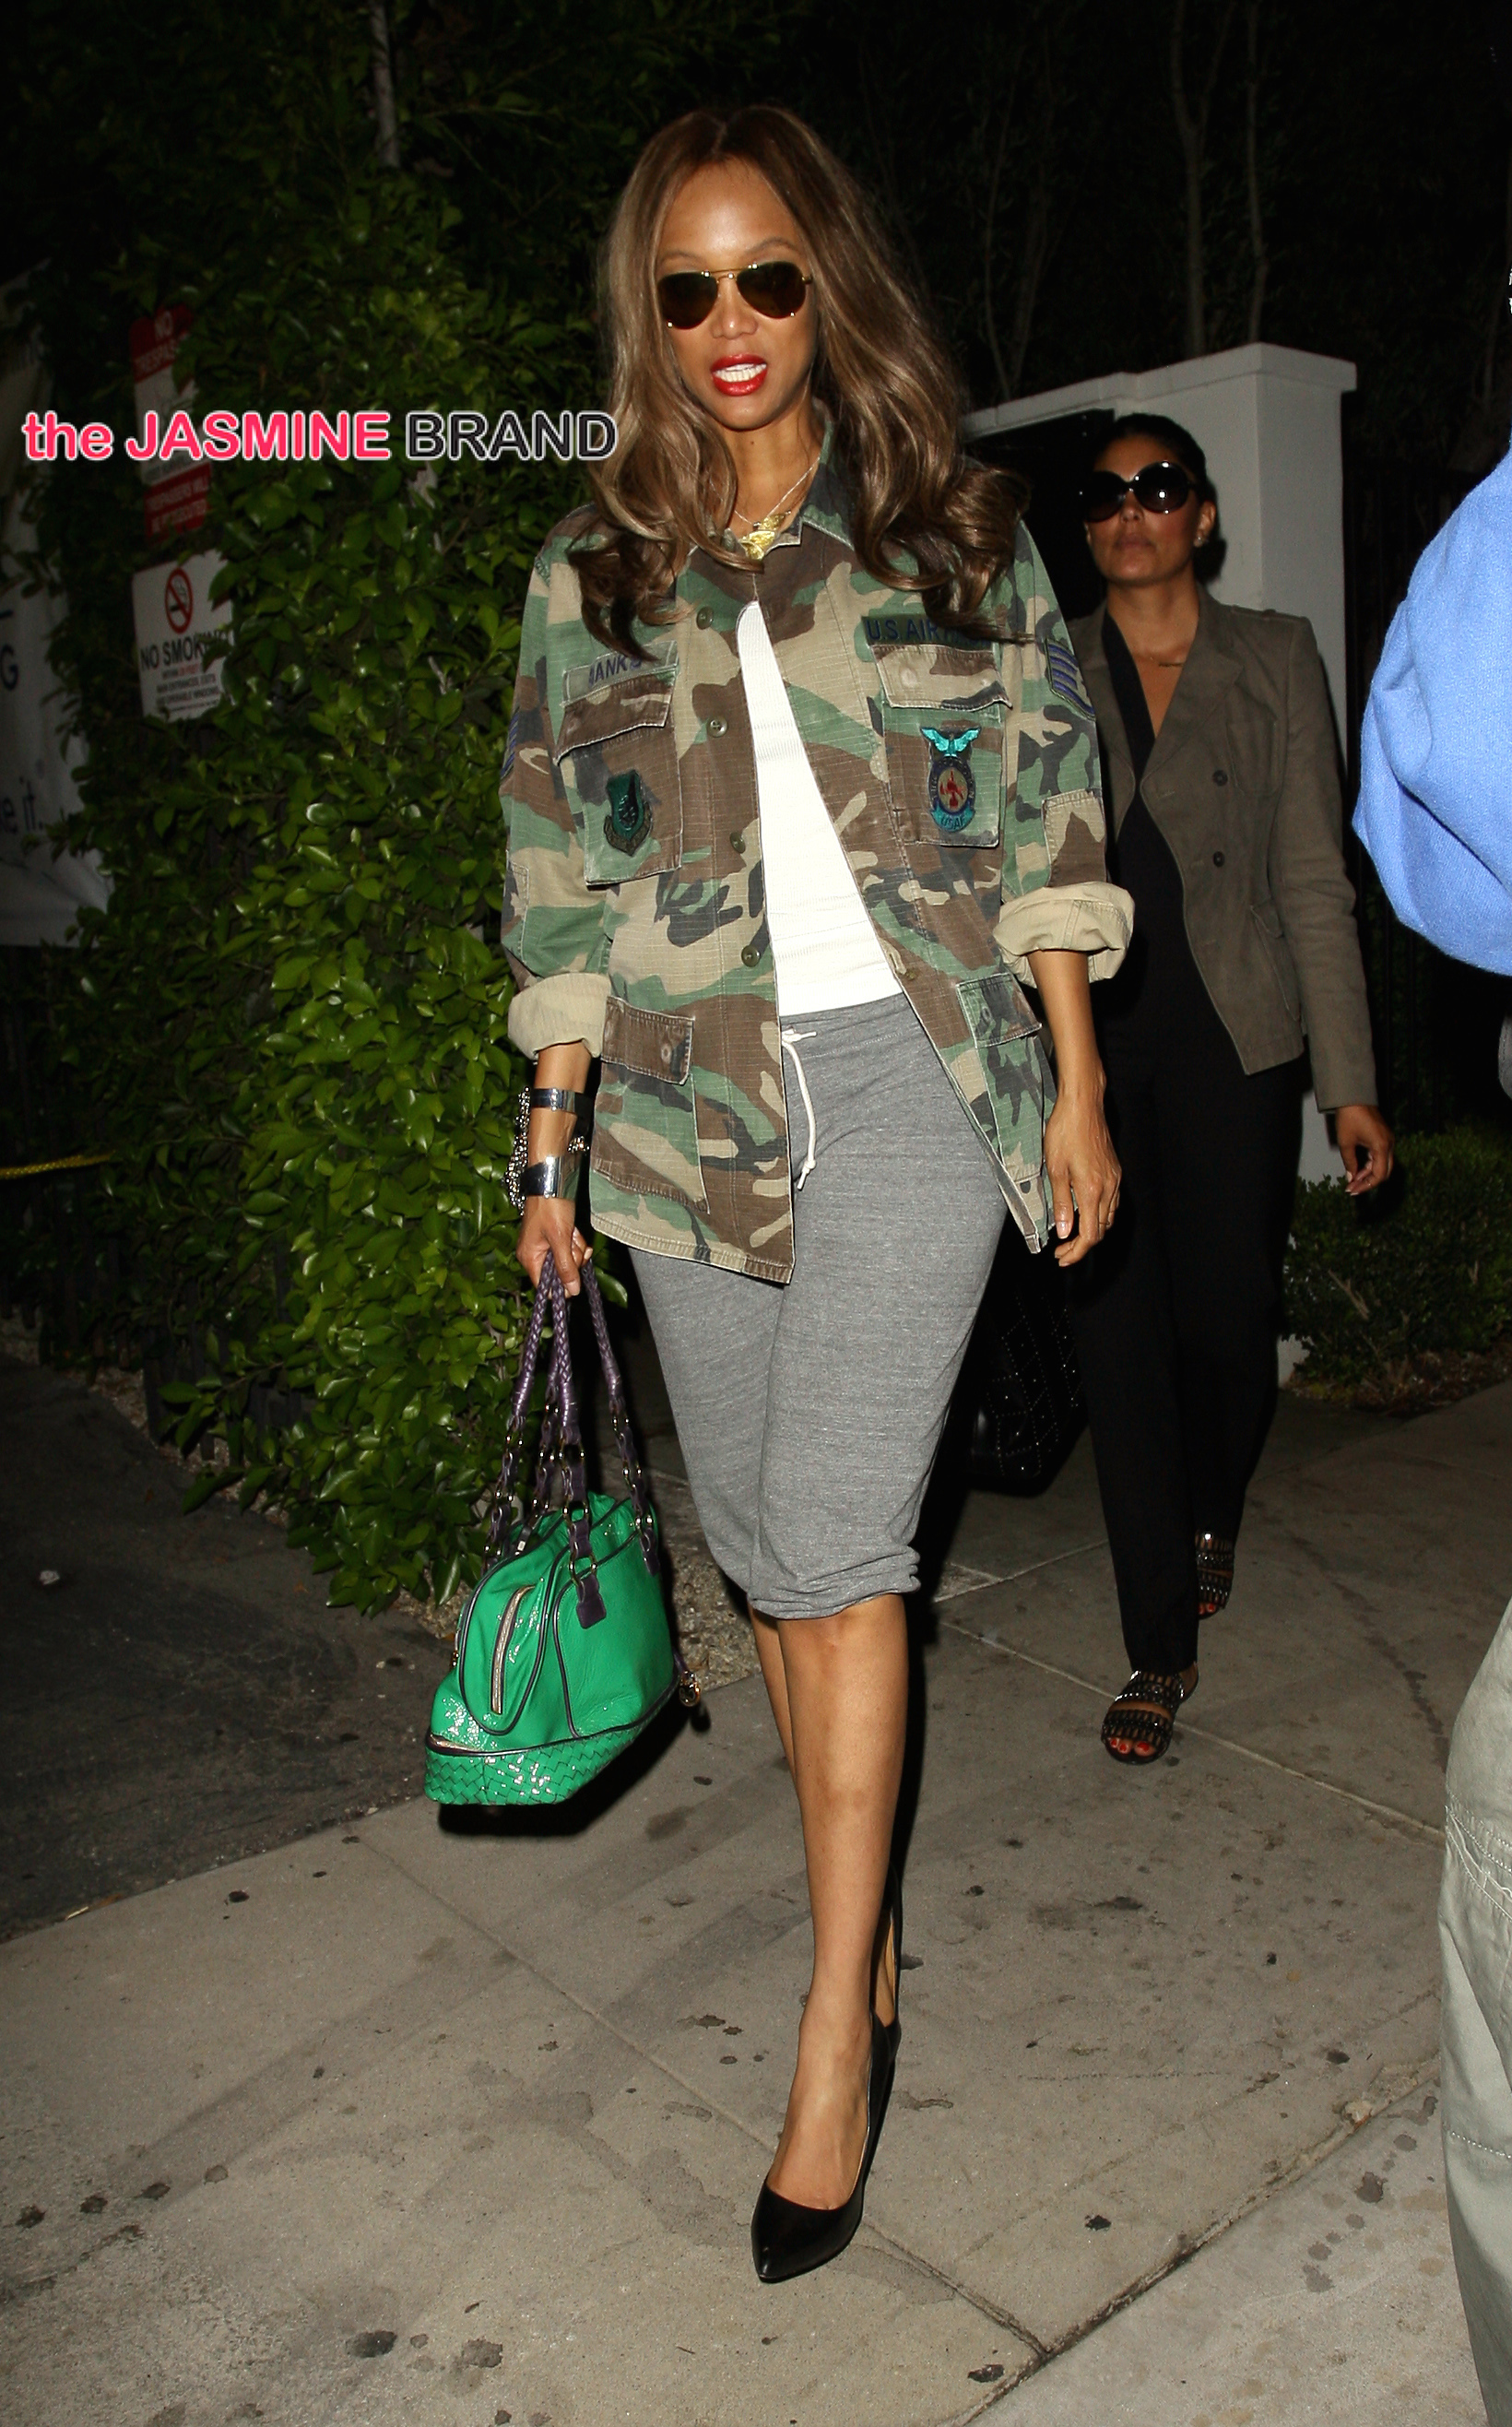 Former model Tyra Banks dine out with a friend at Gracias Madre Mexican restaurant in West Hollywood, CA